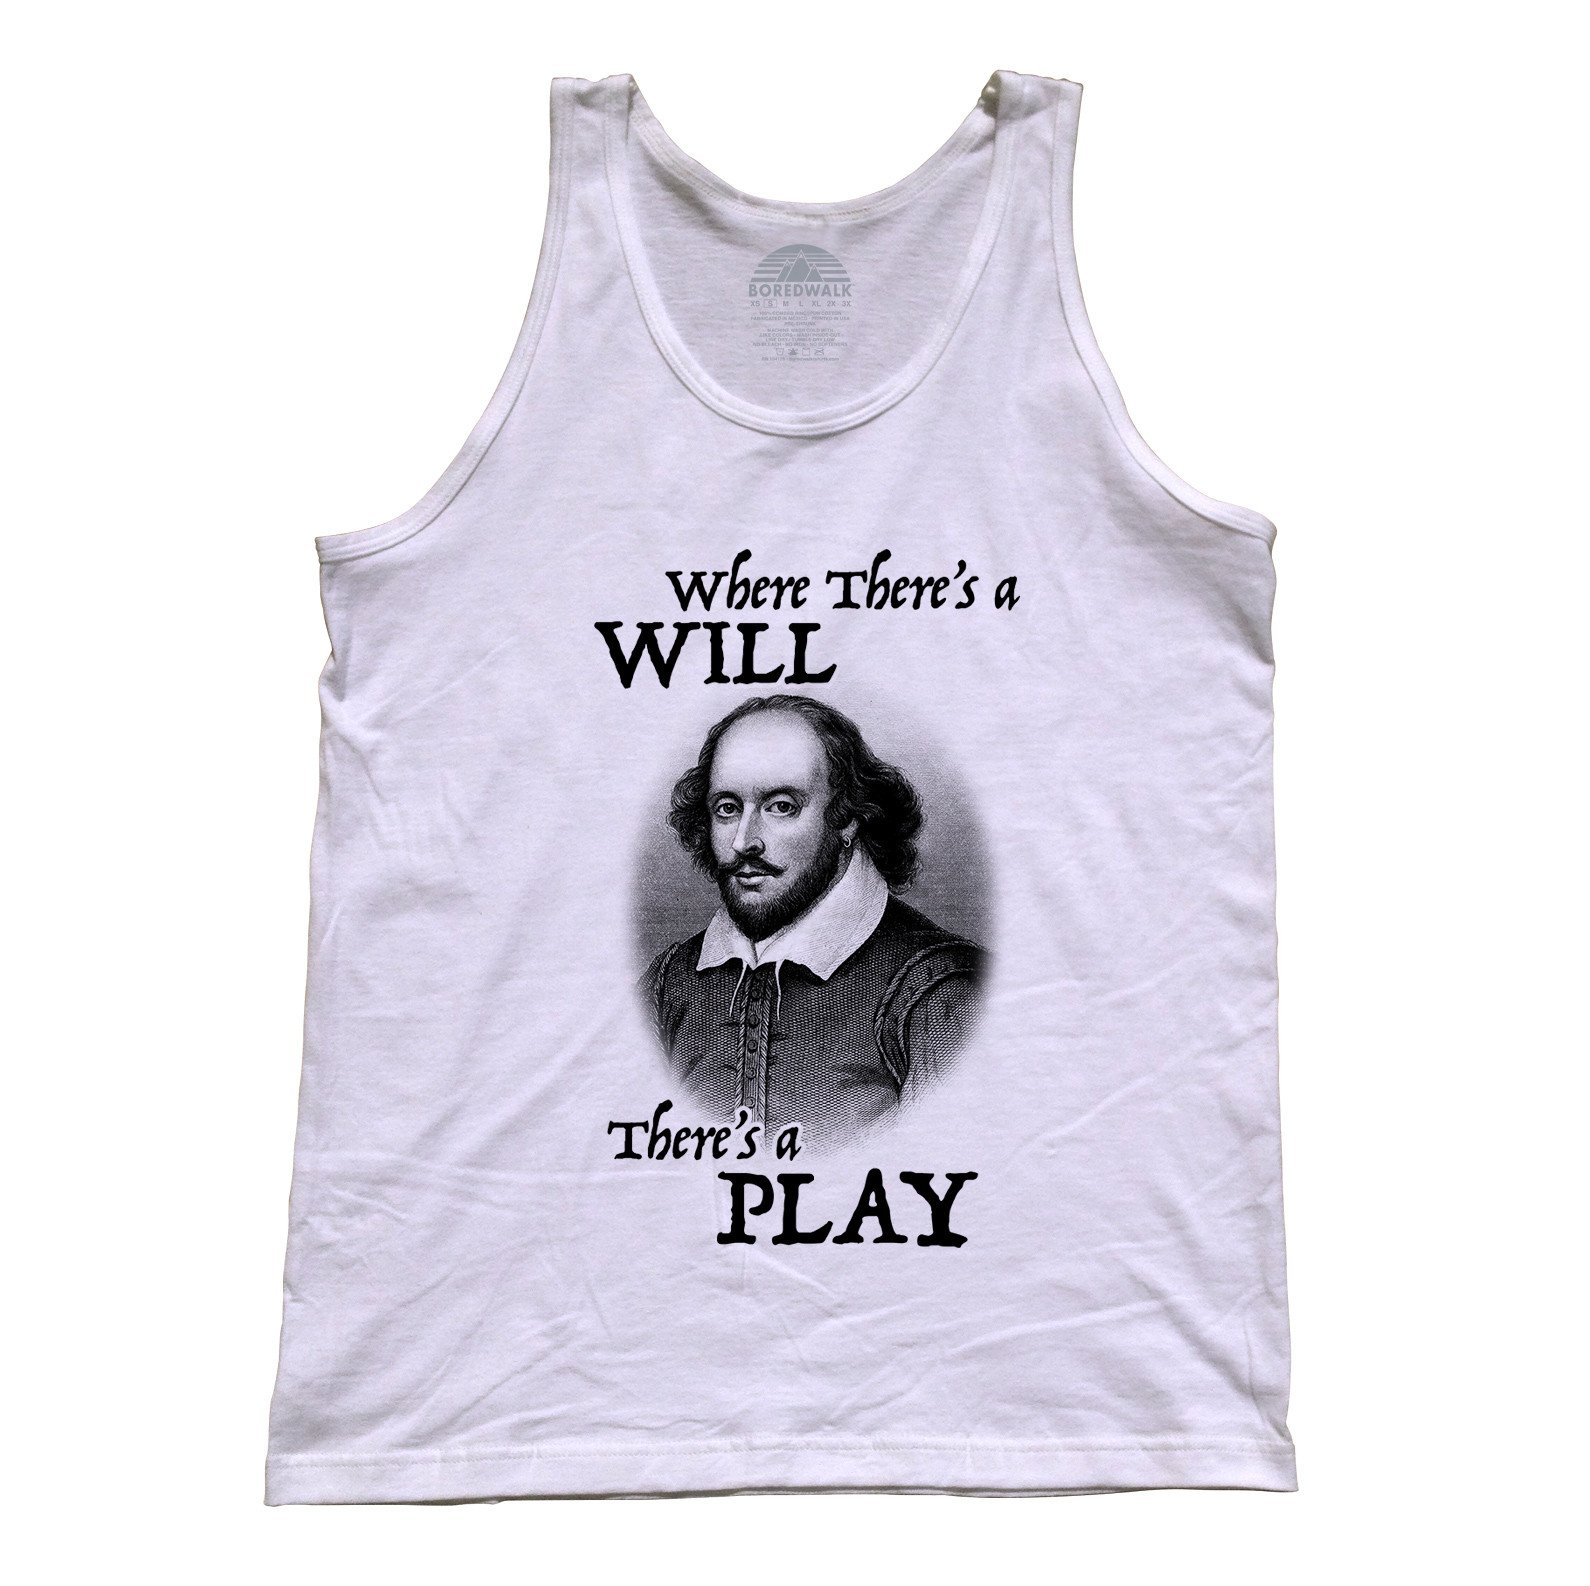 e1c75b7b5 Need a new Shakespeare shirt to complete your literary outfit, nerdy  outfit, or geeky outfit? Look no further! These book shirts combine the  best ...